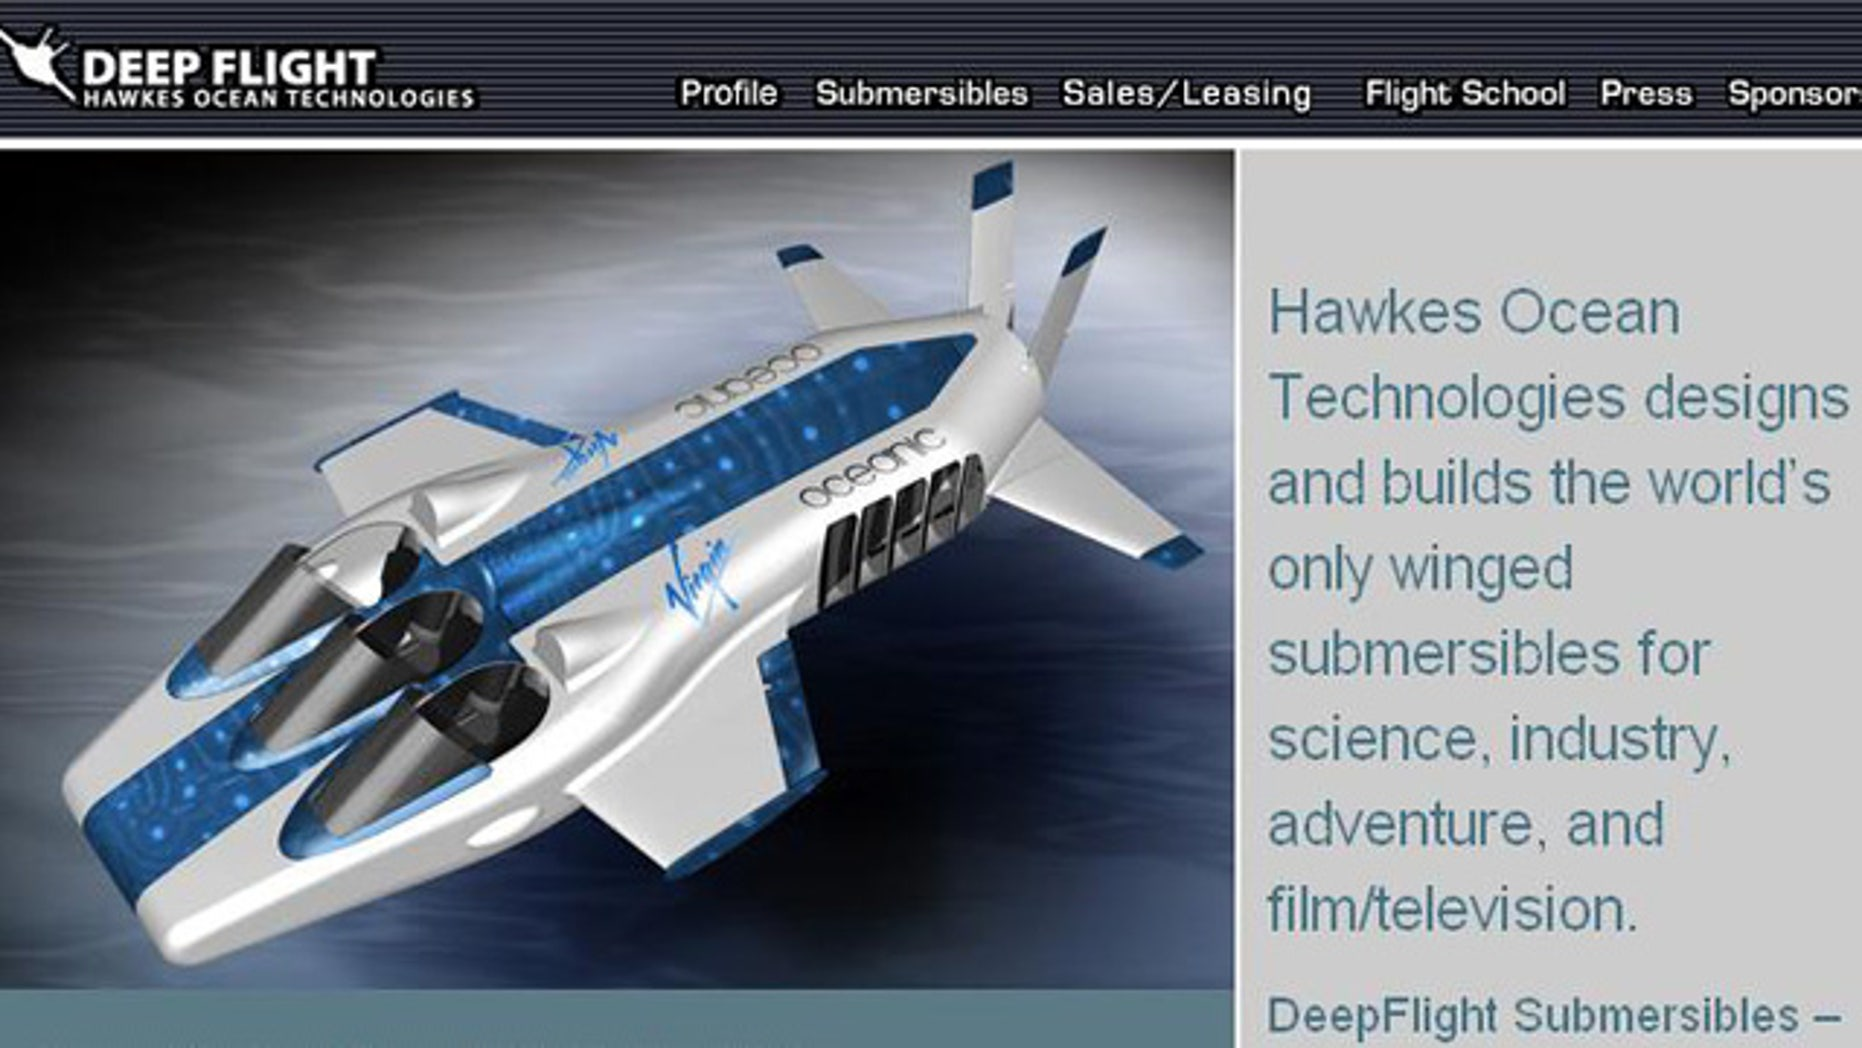 Hawkes Ocean Tech makes this DeepFlight craft, which Virgin owner Richard Branson plans to rent out to the very wealthy.